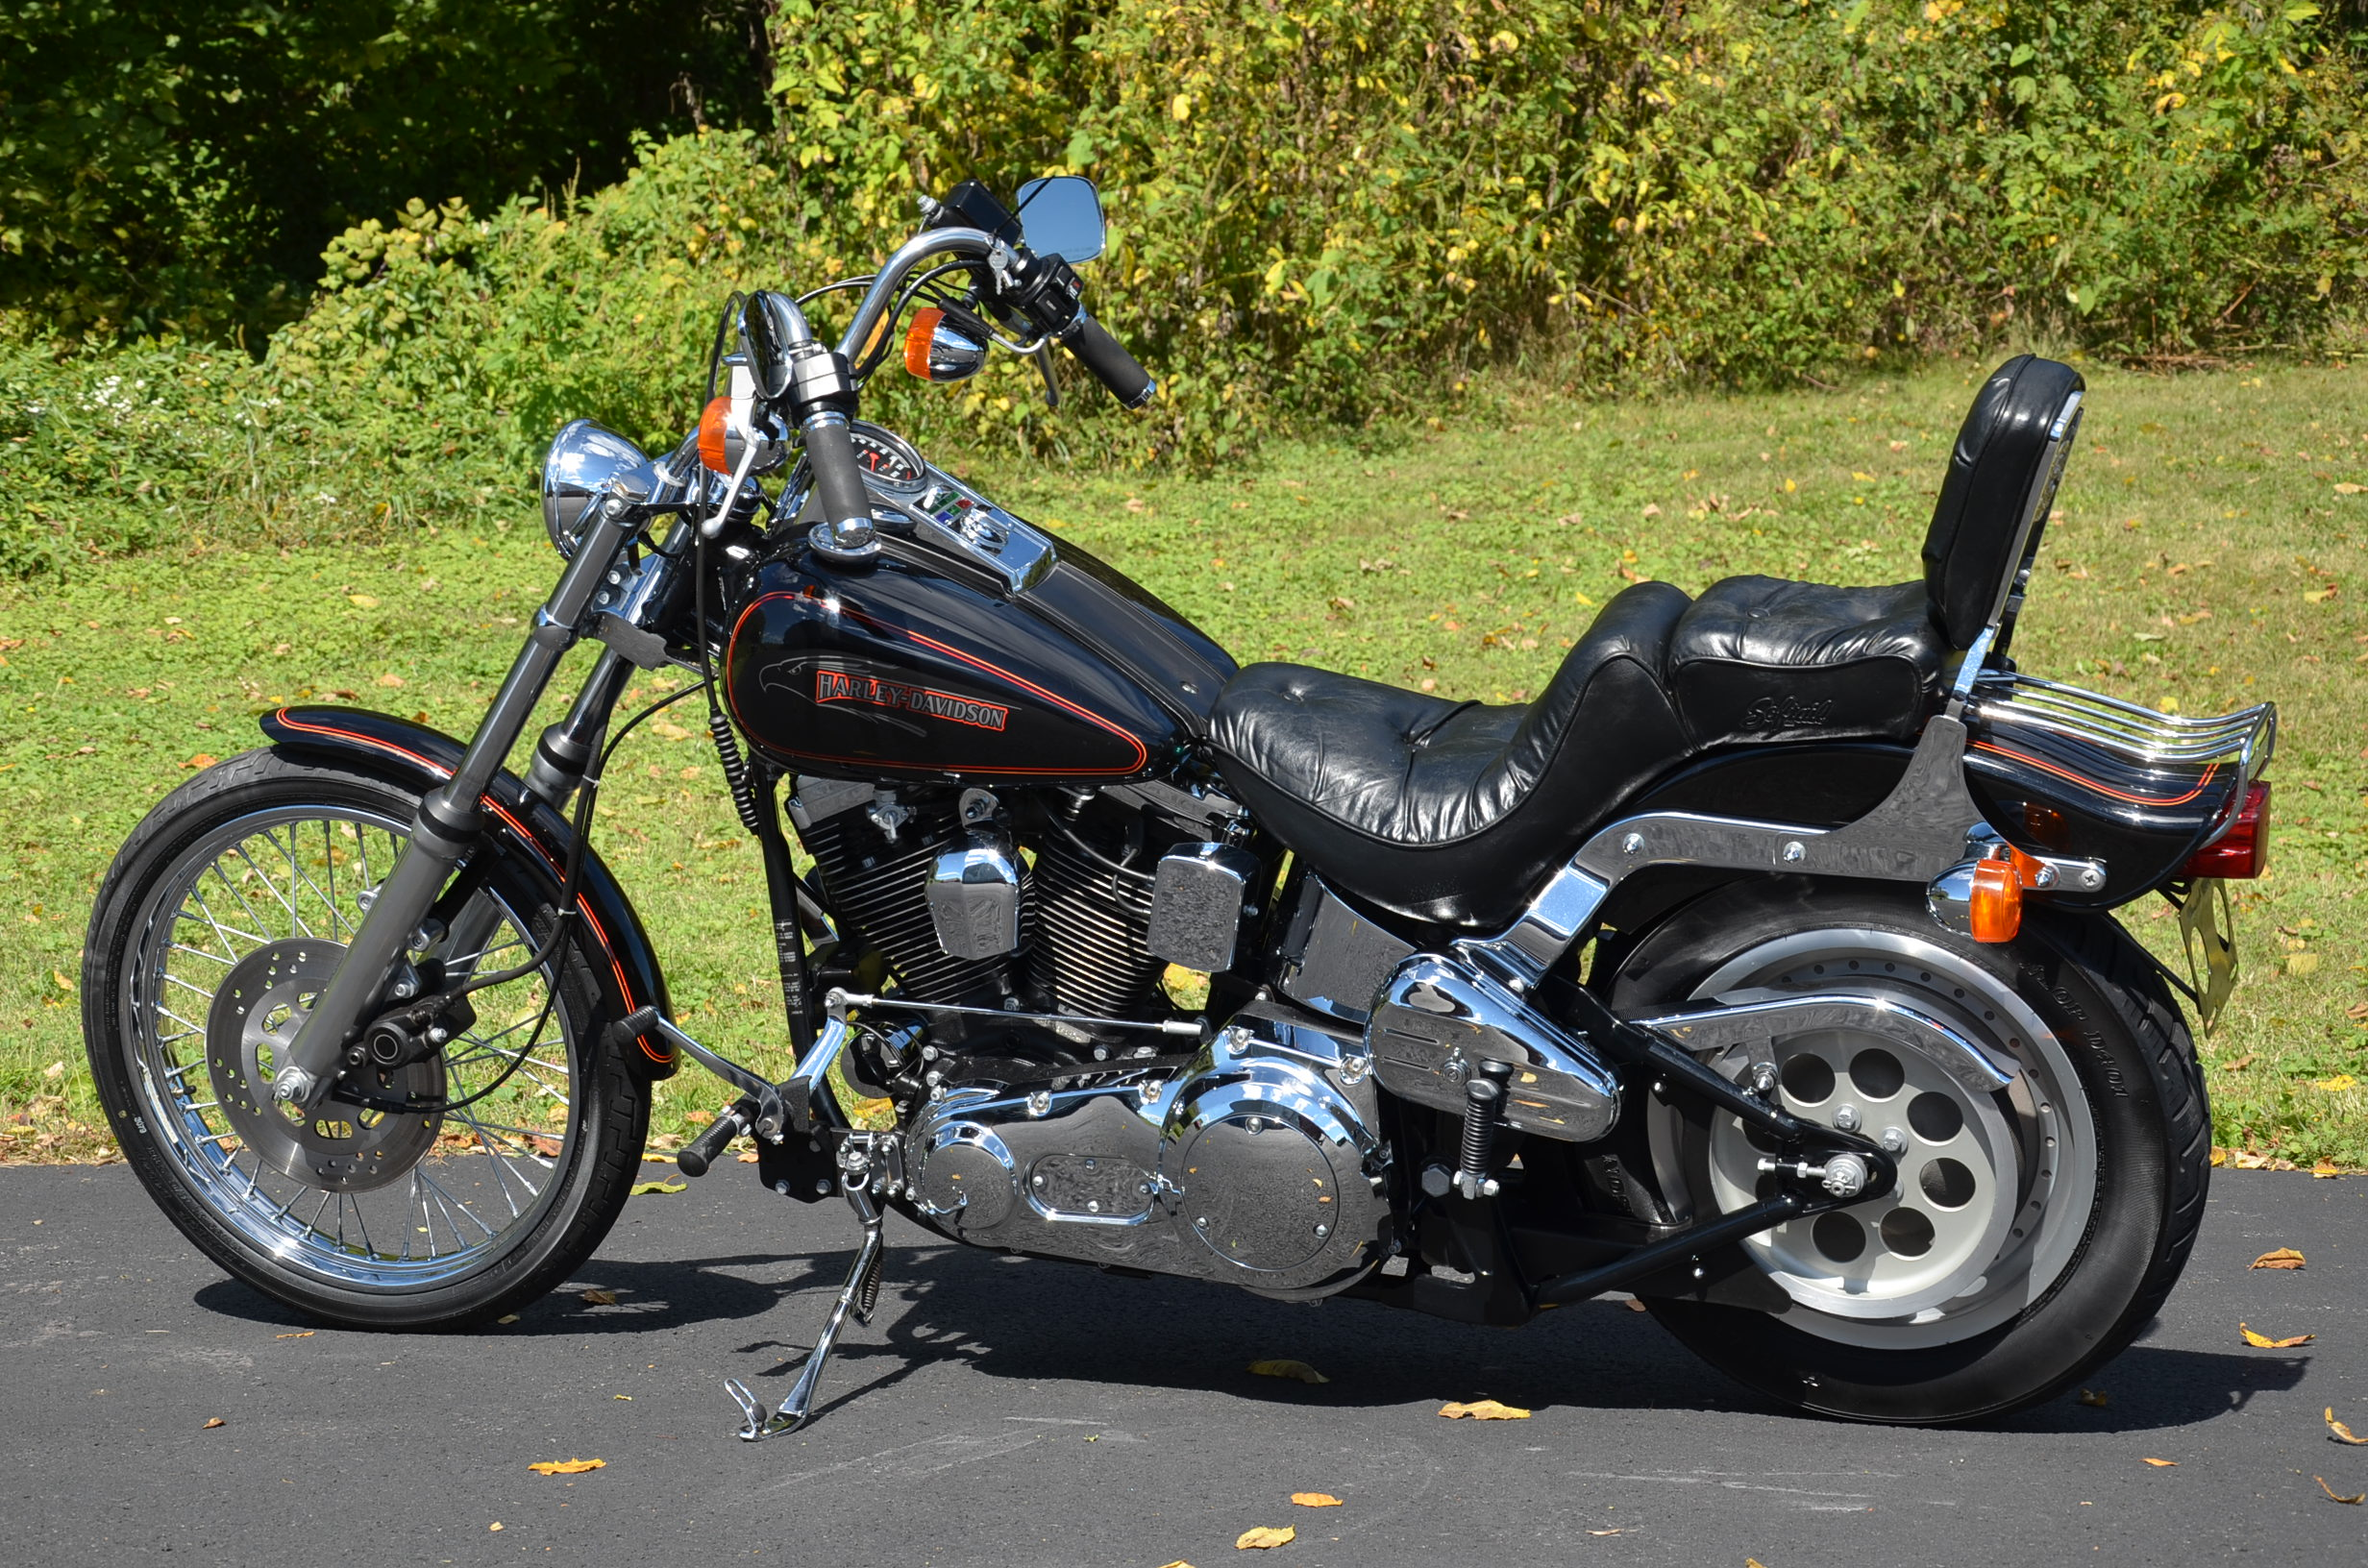 1991 black harley davidson evolution evo for sale on 2040 motos. Black Bedroom Furniture Sets. Home Design Ideas